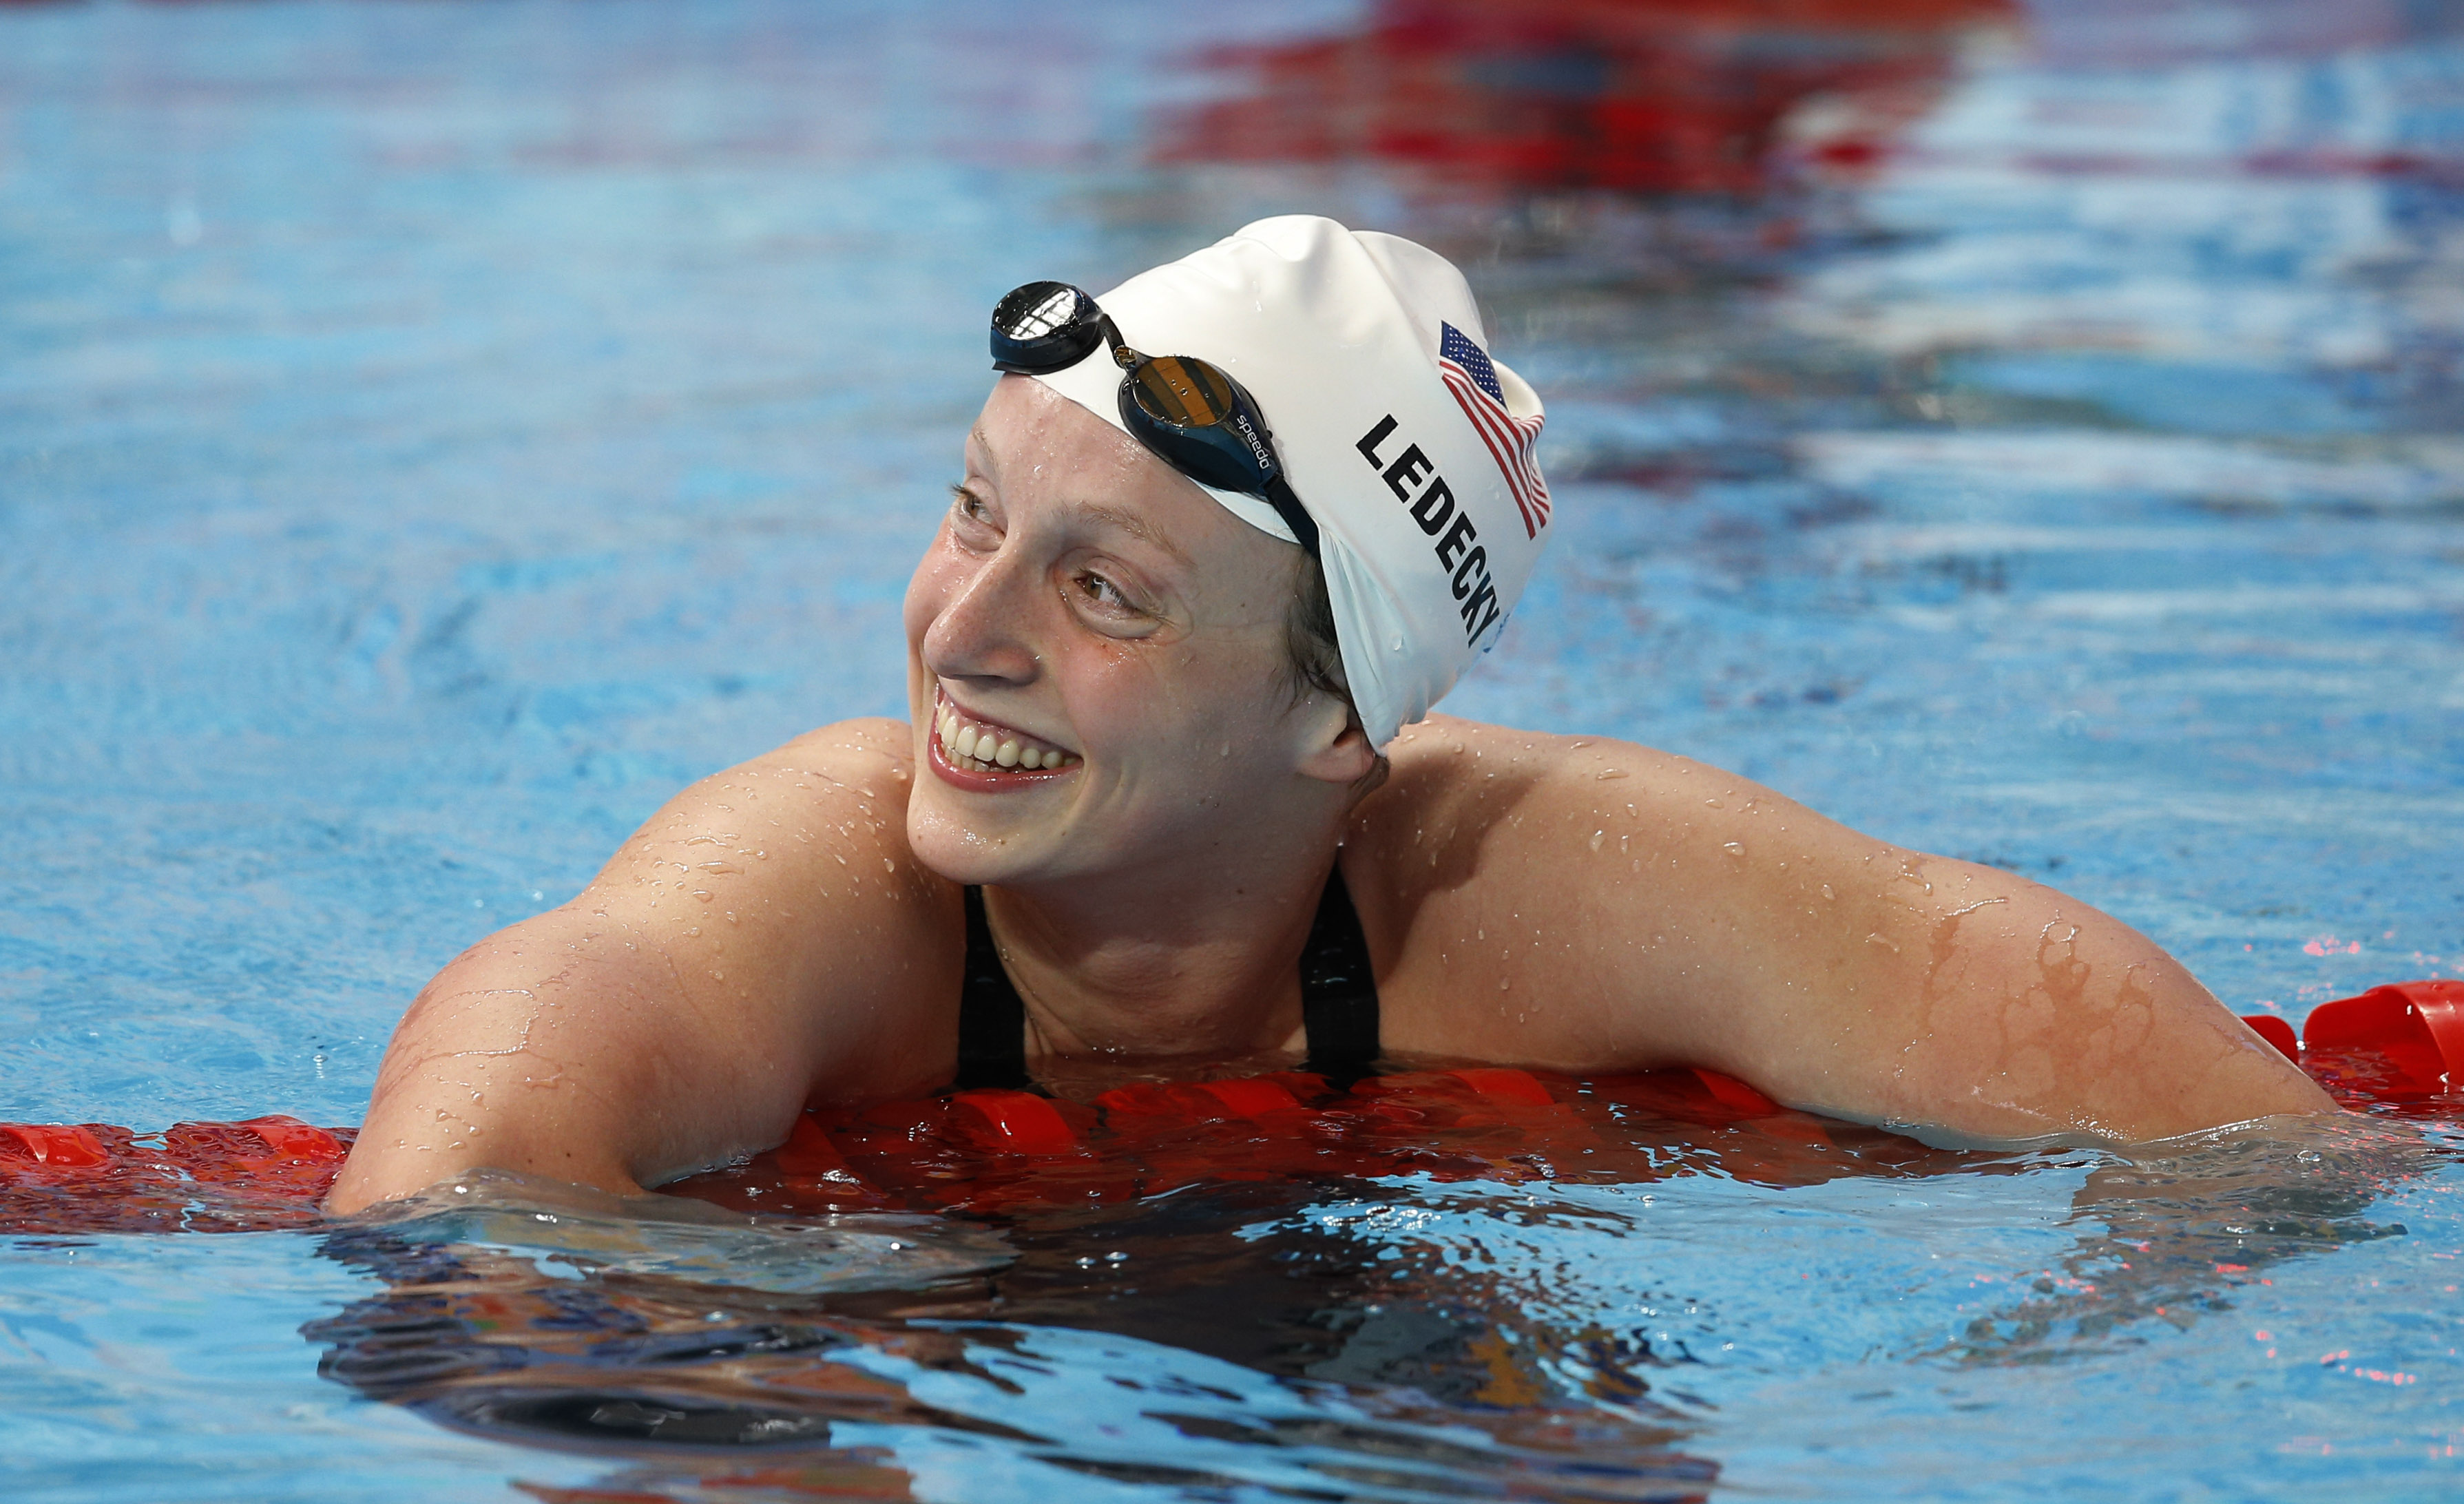 Maryland's Ledecky named USA Swimming's Athlete of the Year